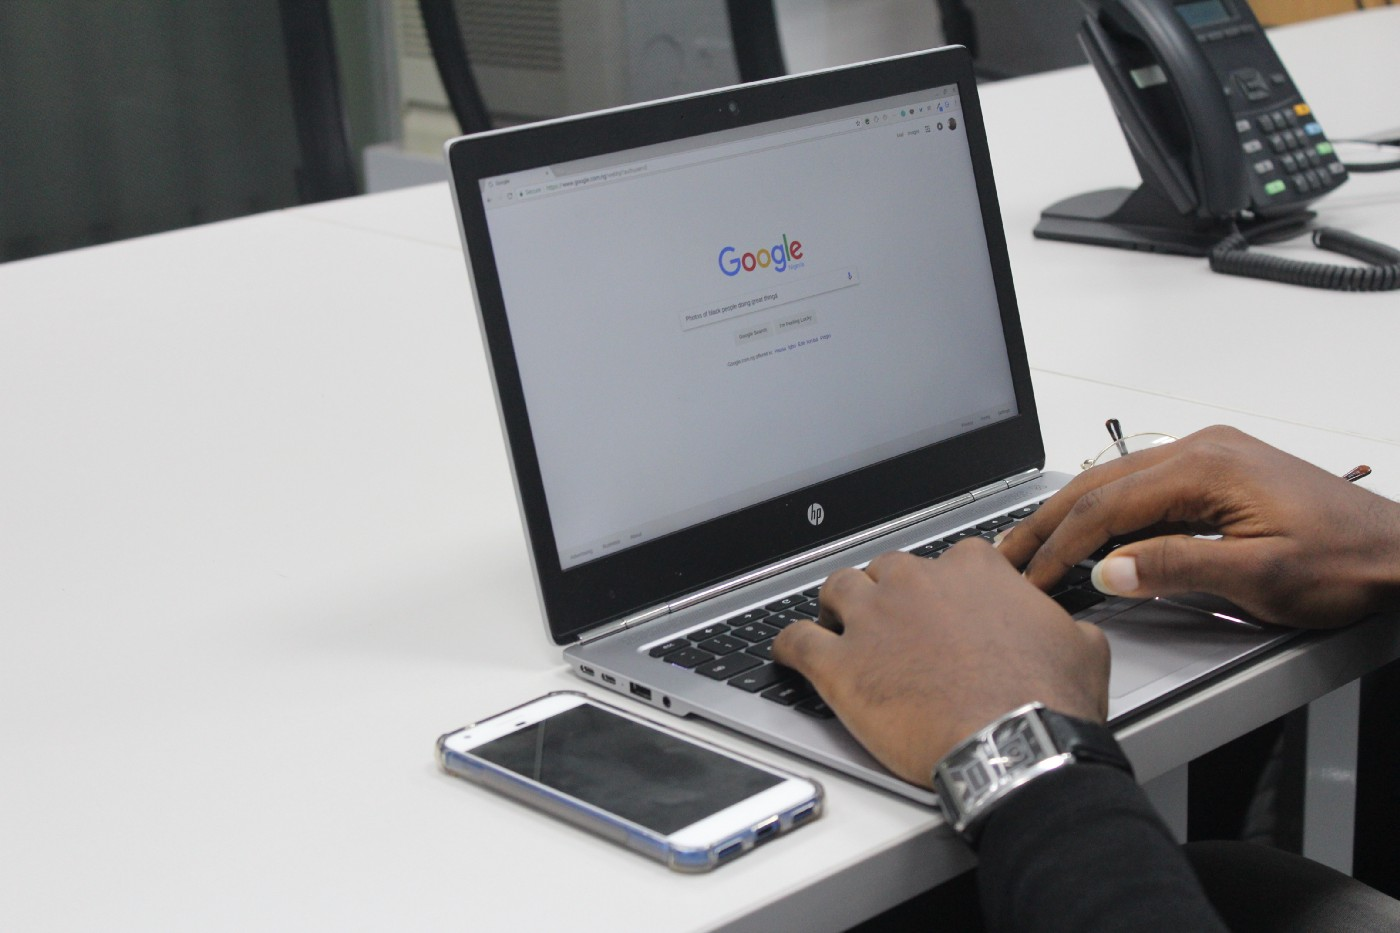 Google, shown on the screen of a laptop. A man wearing a watch. There is an iPhone on the table.